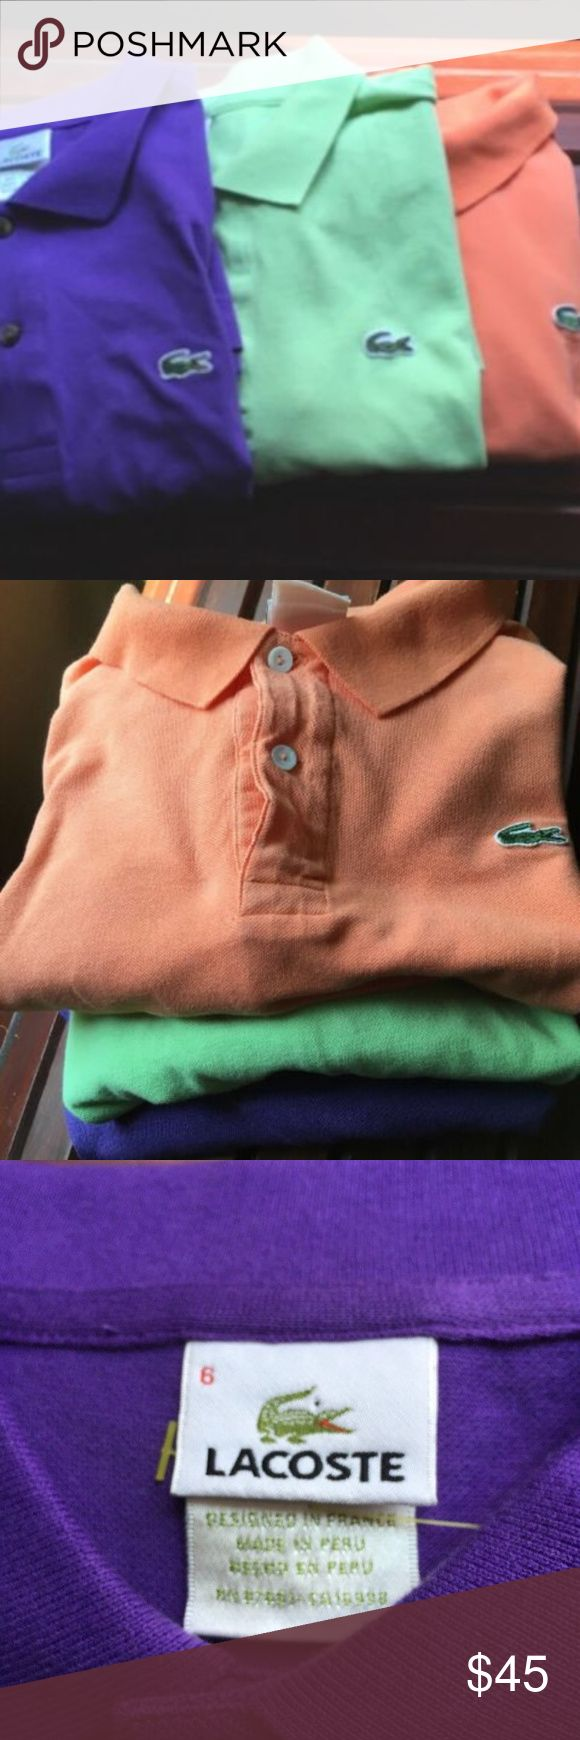 """LACOSTE polo golf men's shirts size 6 bundle Lacoste polo shirts lot - lime green - purple - papaya color all size 6  arm pit to arm pit 24"""" across  collar top to bottom of hem 29""""  in pre owned condition - very good - salmon/peachy orange has a faint mark towards bottom of shirt - refer to pictures - price reflects Lacoste Shirts Polos"""